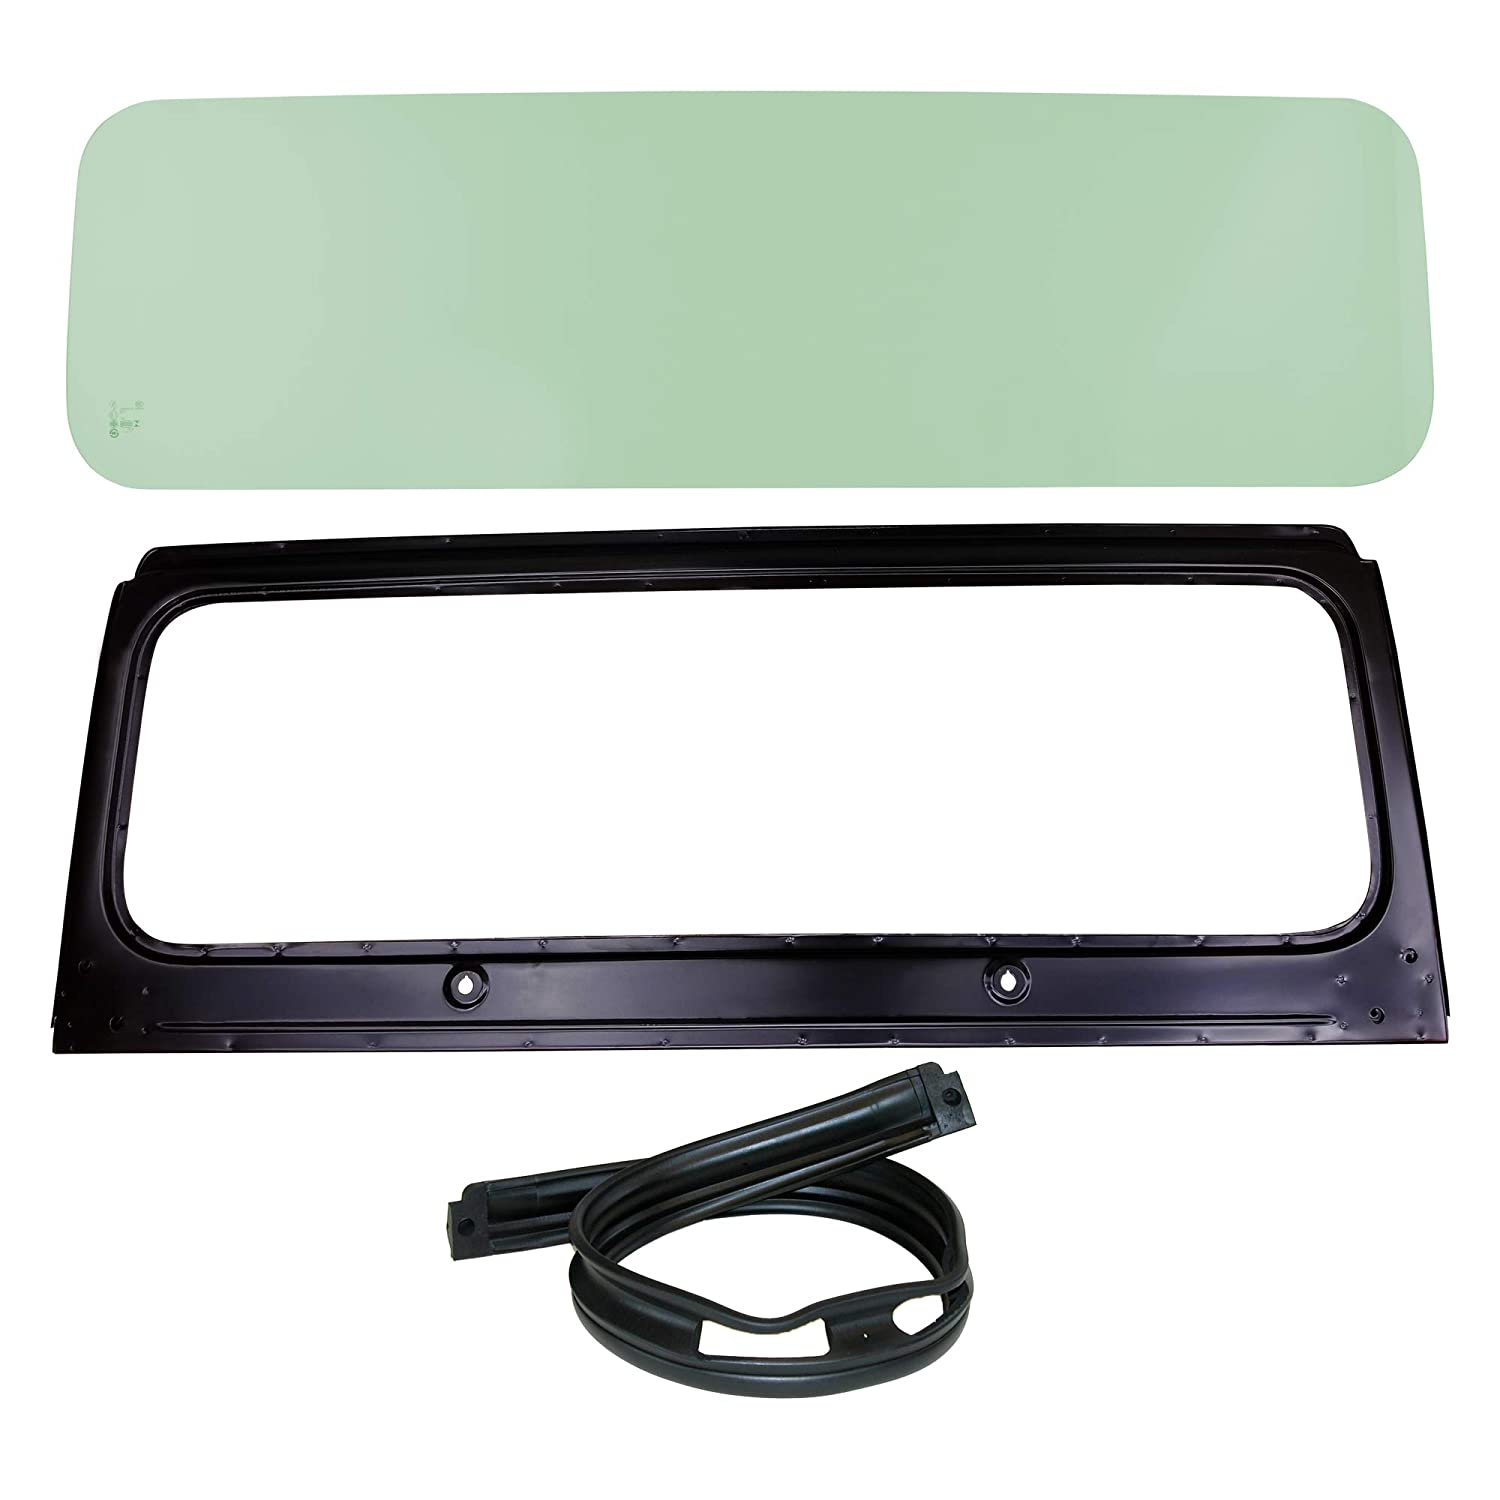 Make Auto Parts Manufacturing Set of 3 Front DOT Approved Windshield Glass CH1280104 Frame and Cowl Seal KIT for Jeep CJ5 1976-1983 CJ7 1976-1986 and CJ8 Scrambler 1981-1985